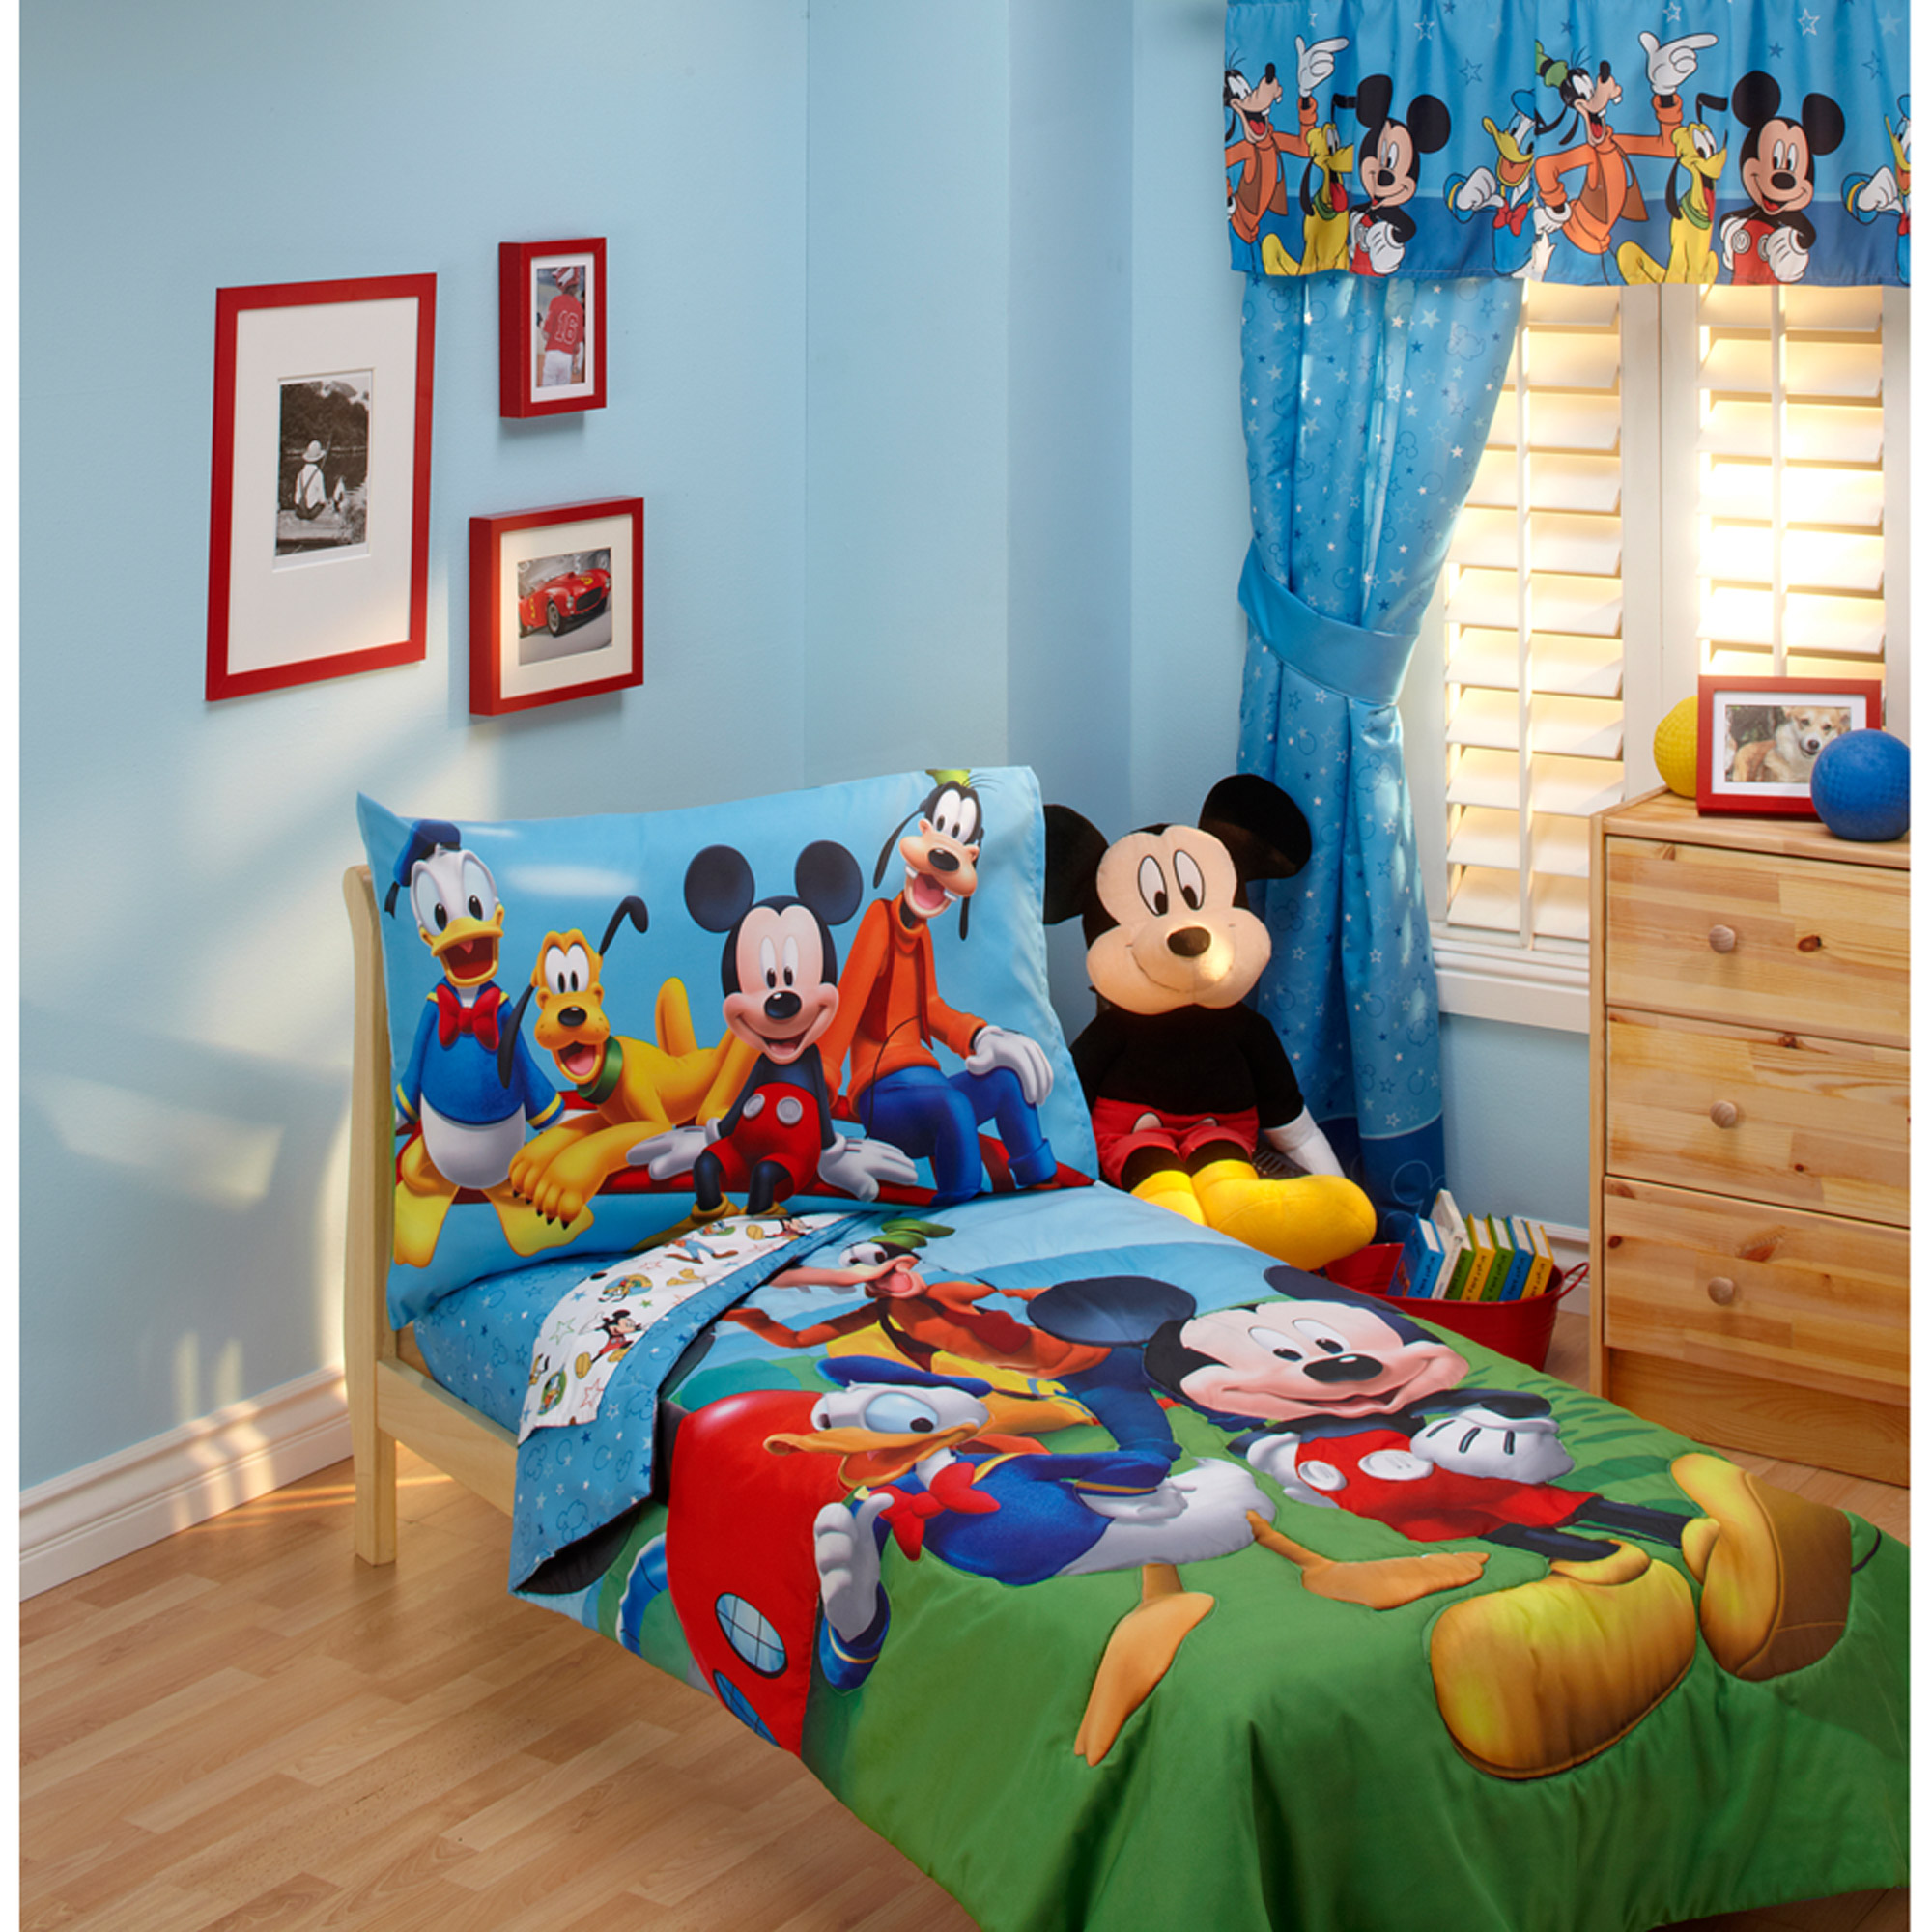 Crib size quilts for sale - Disney Mickey Mouse Playground Pals 4 Piece Toddler Bedding Set Walmart Com